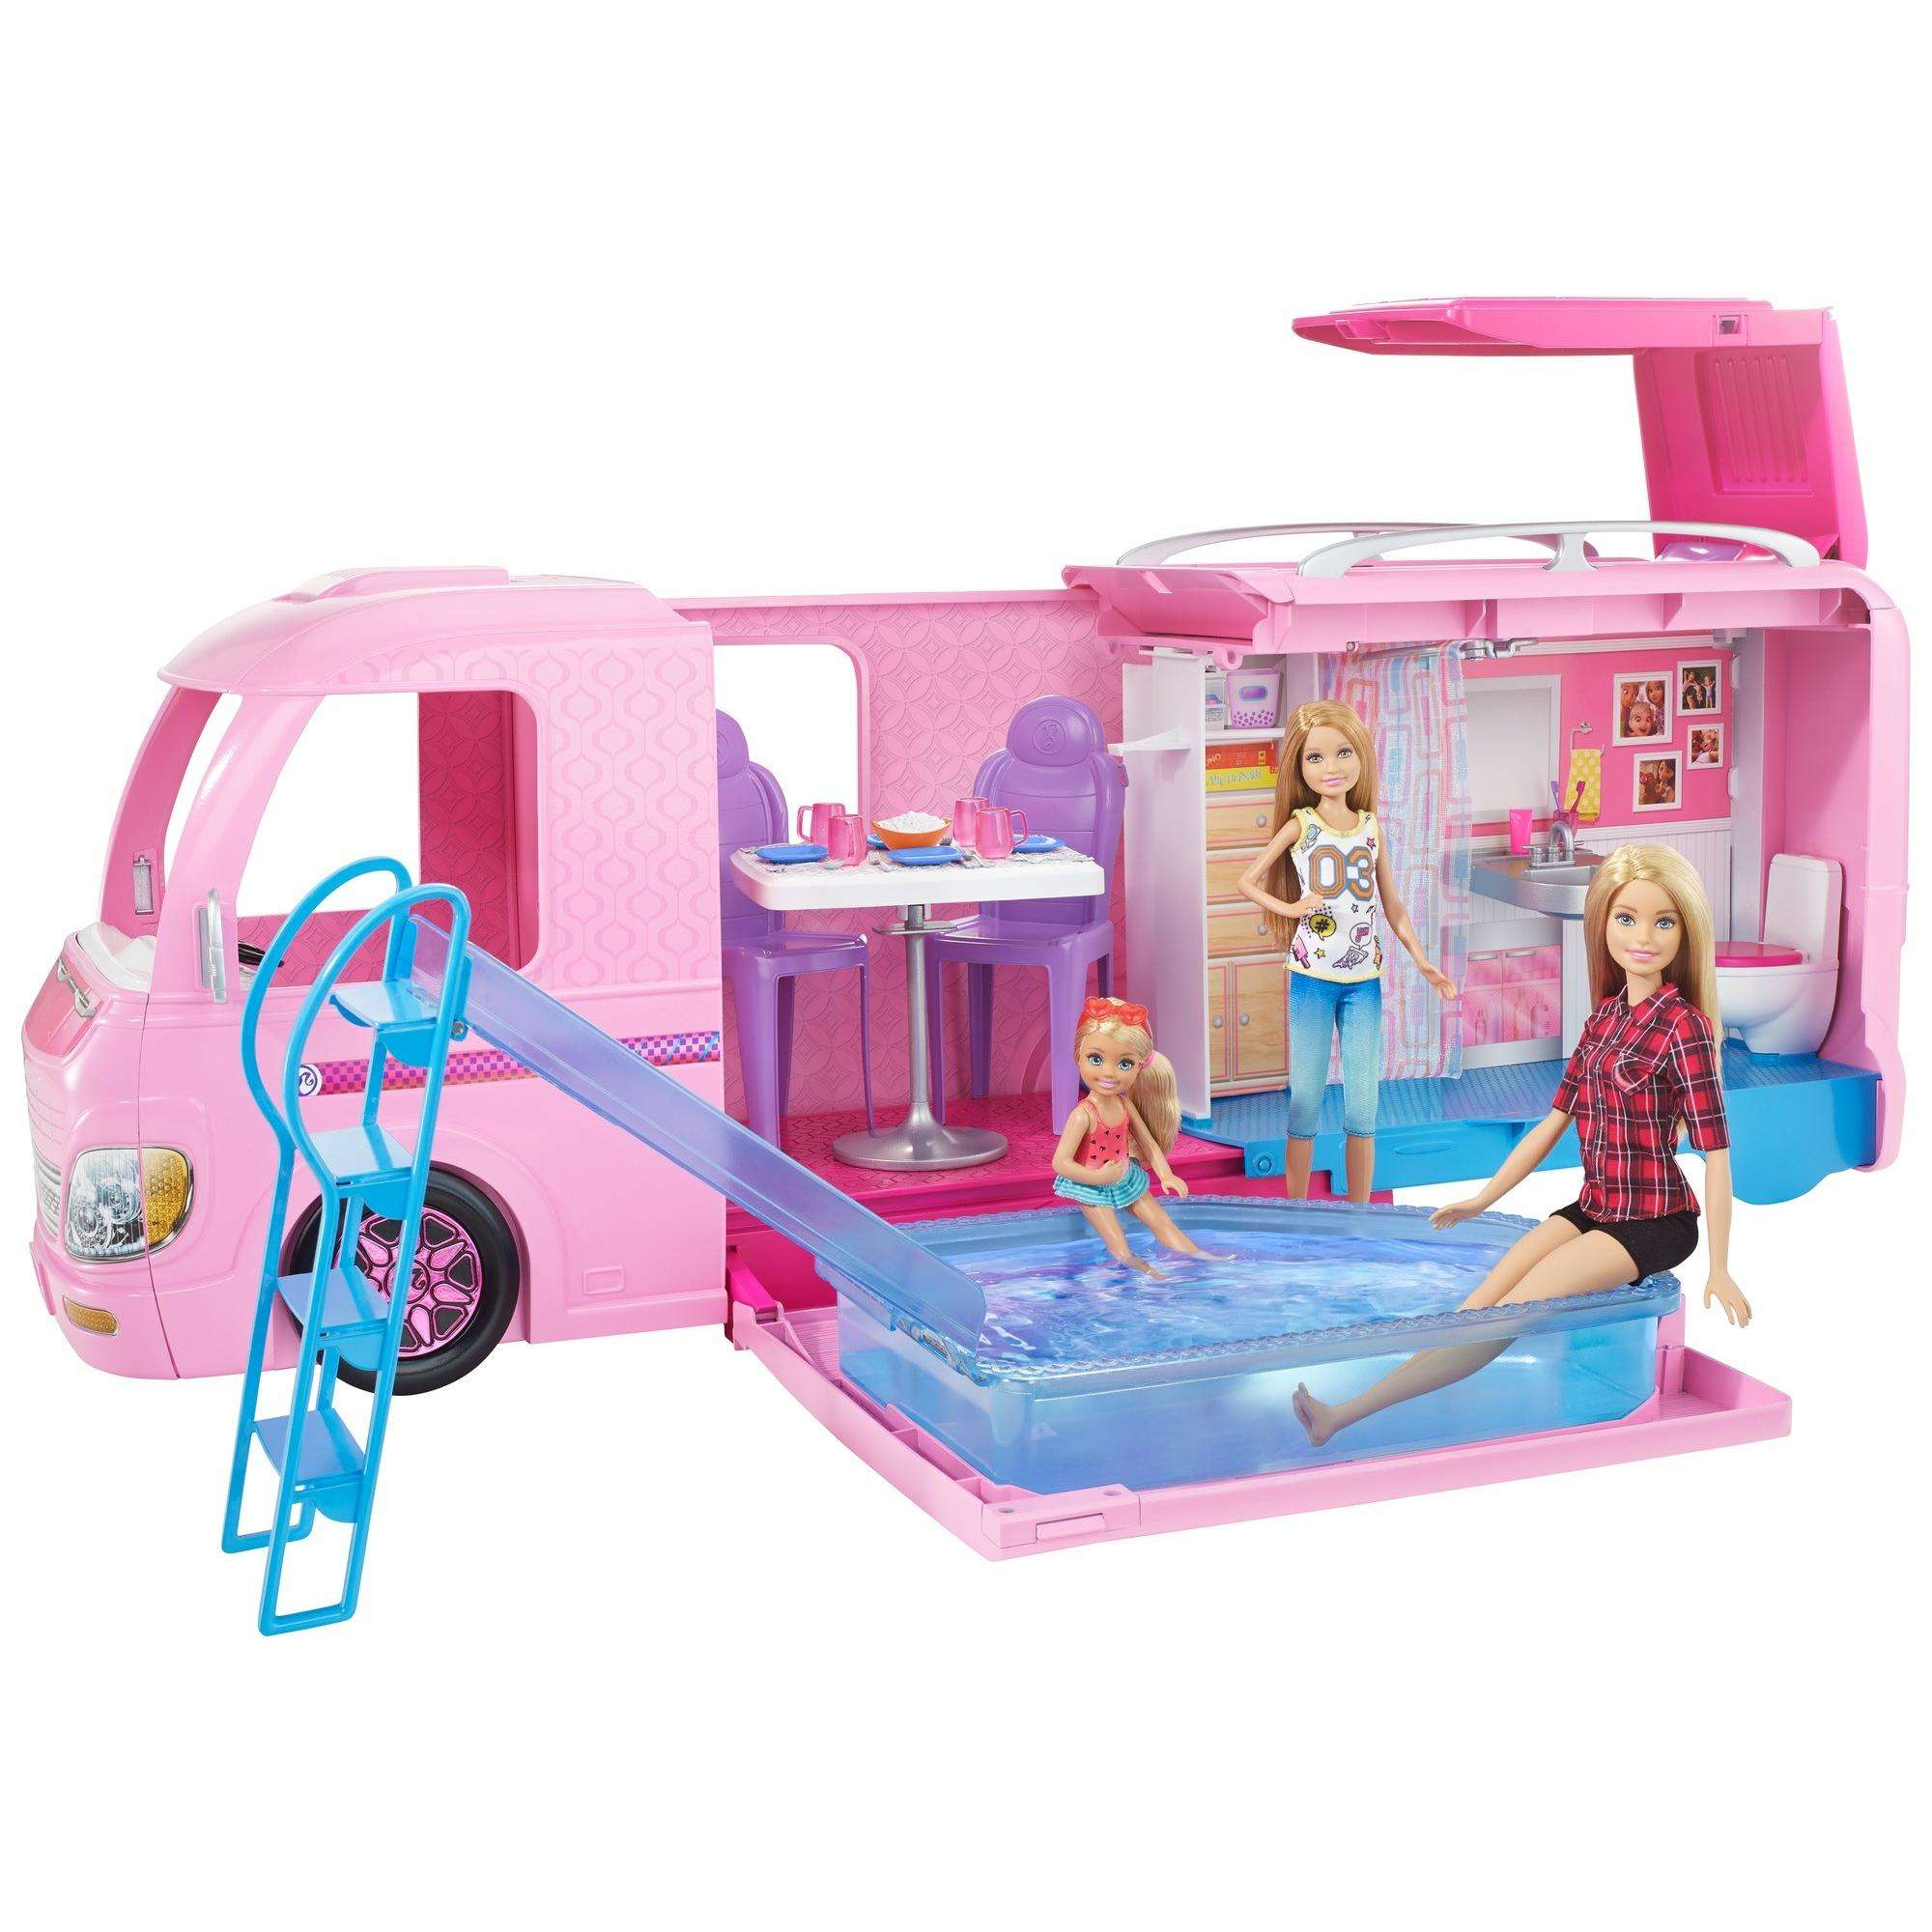 Barbie DreamCamper Adventure Camping Playset with Accessories by Mattel